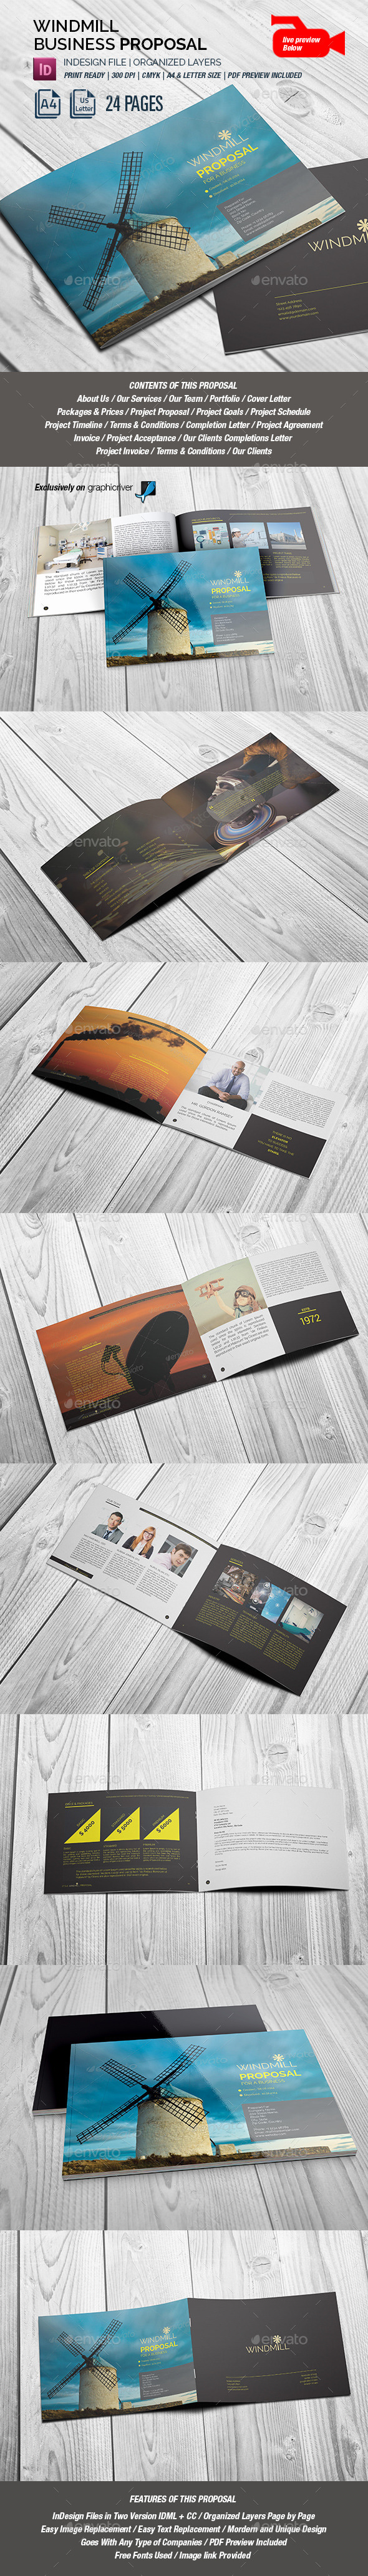 Windmill Multipurpose Lanscape Proposal - Proposals & Invoices Stationery